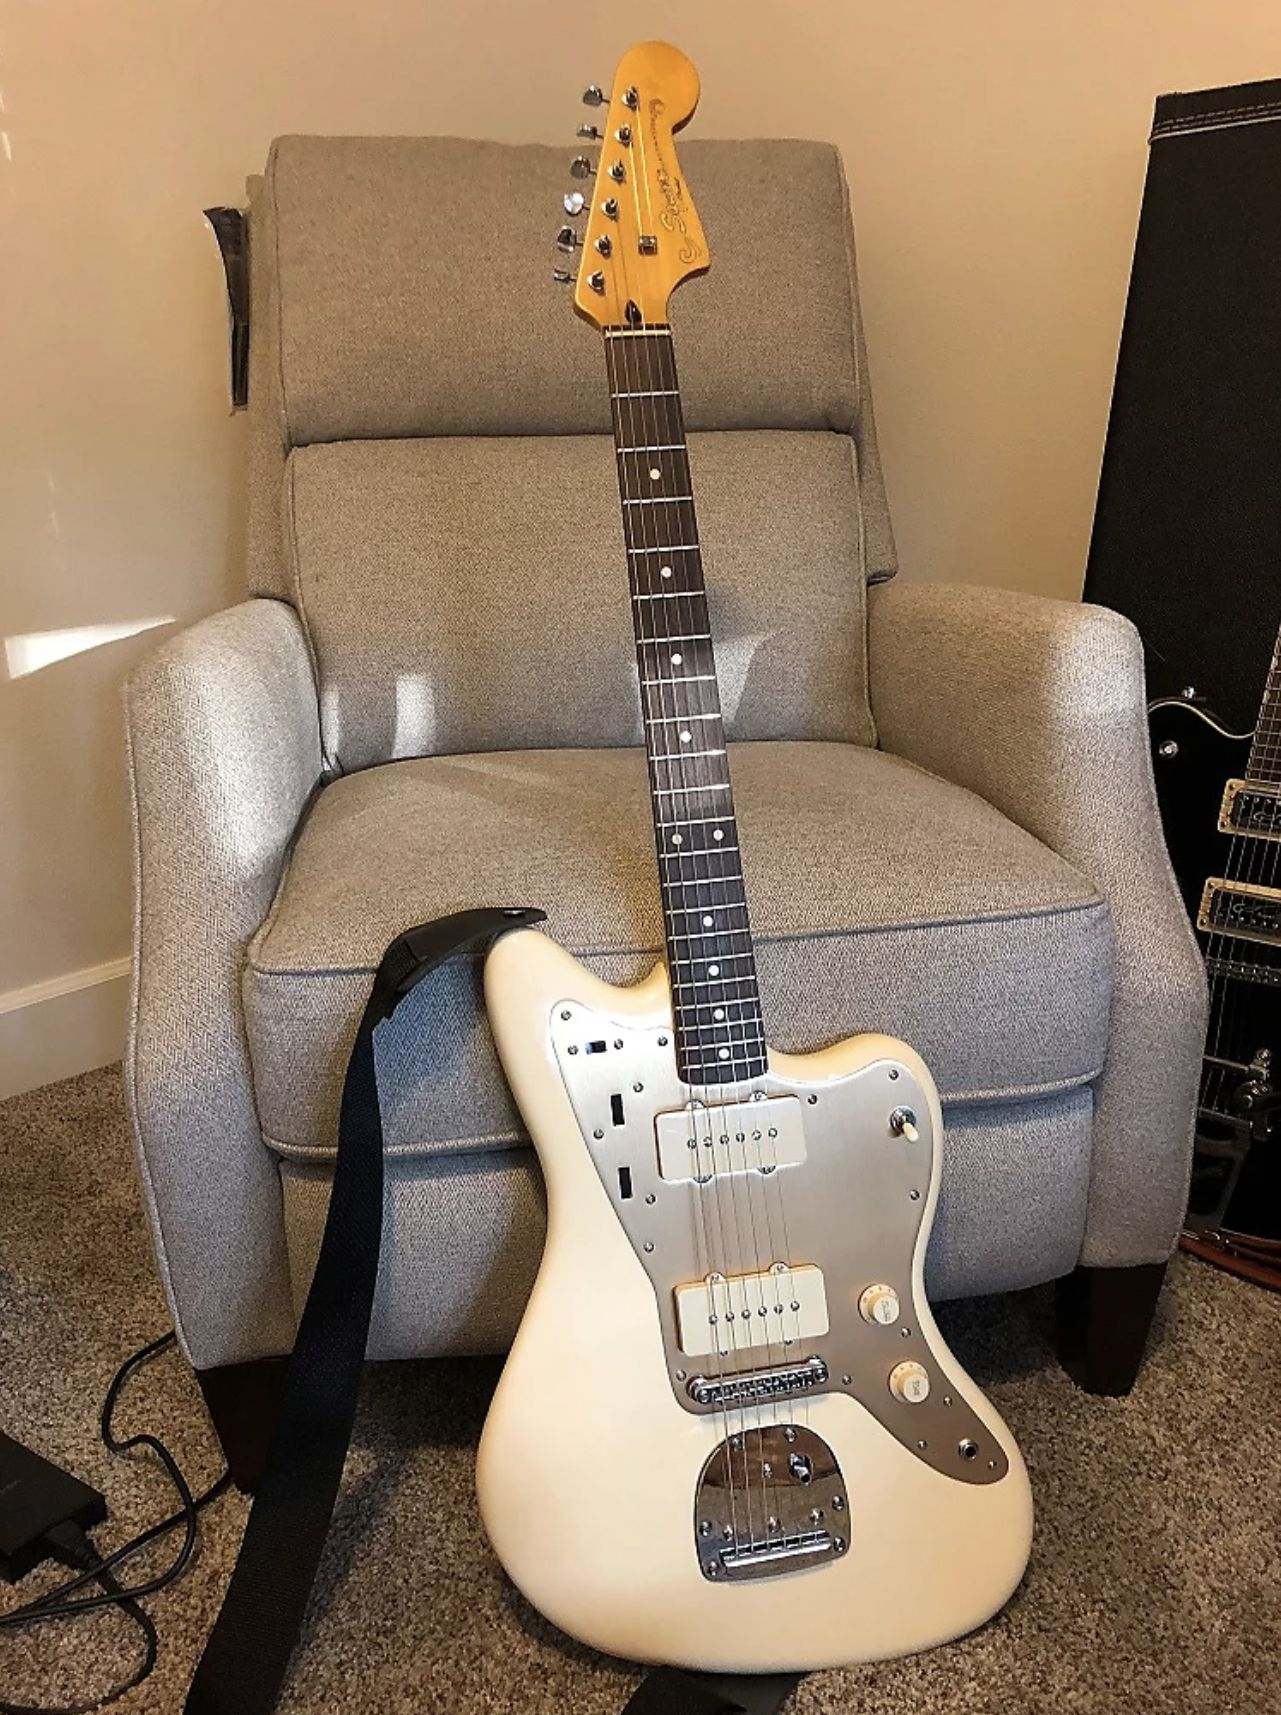 small resolution of trusty j mascis jazzmaster but photographed in a different light so explore jazzmaster wiring jazzmaster build and more fender jaguar